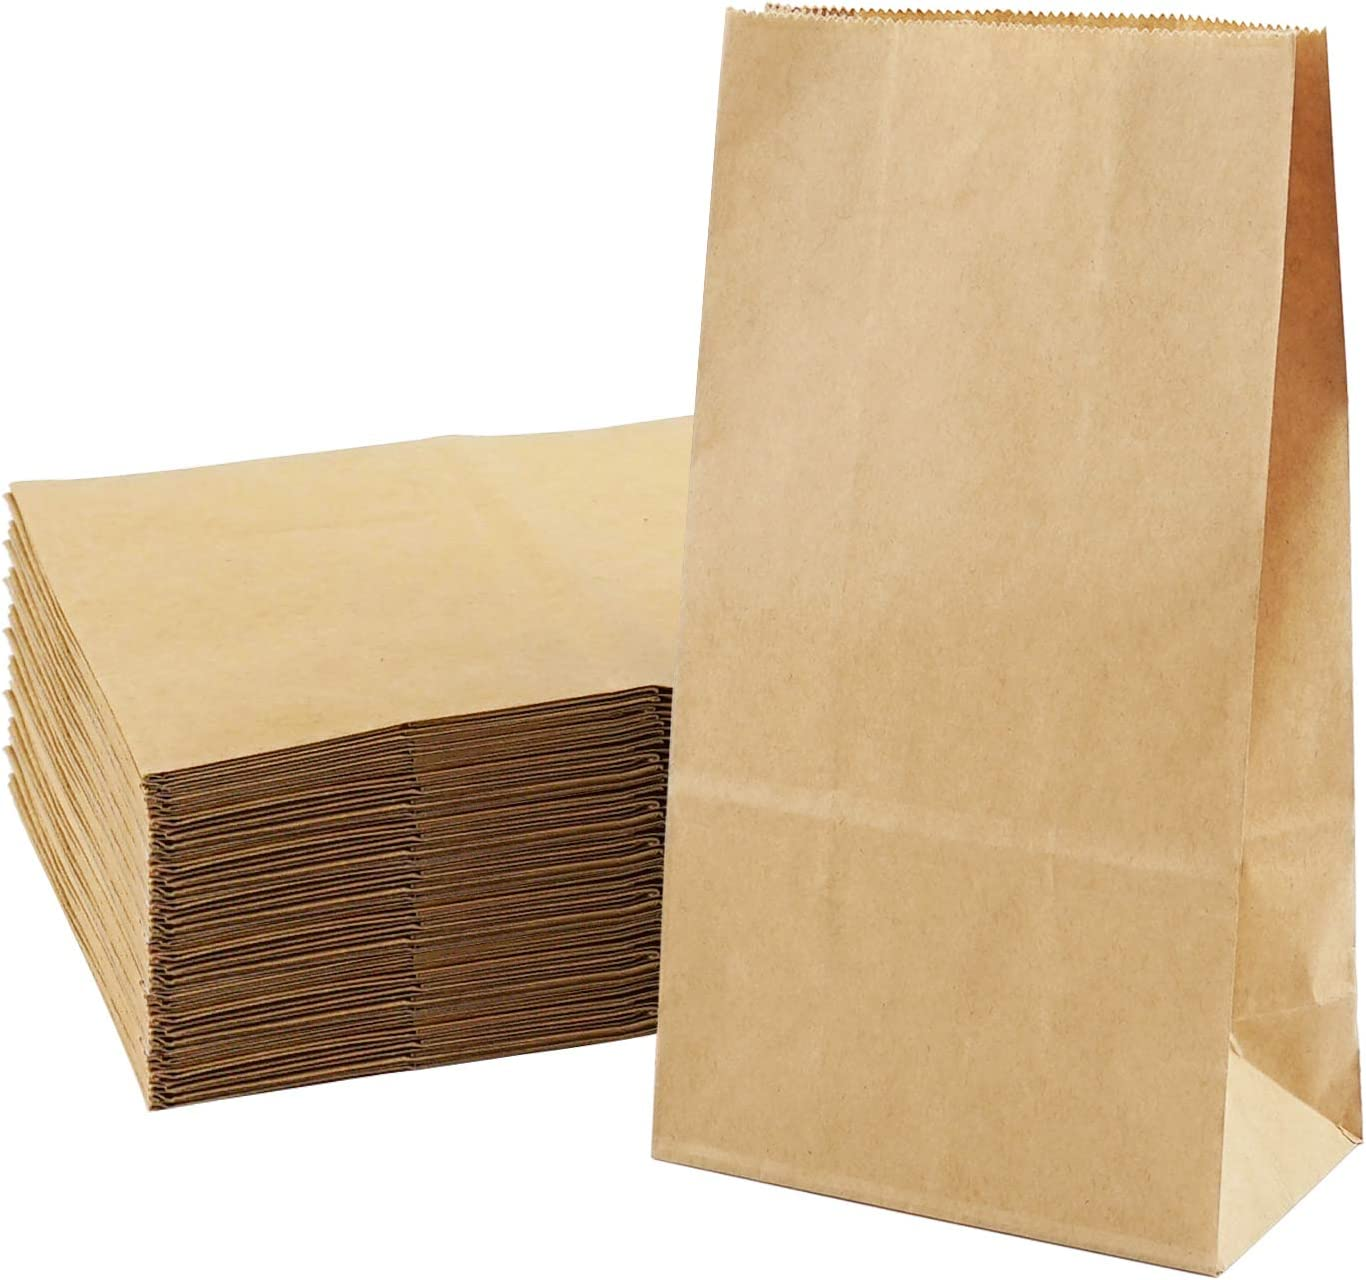 Food Paper Bag 100 Pack Brown Kraft Paper Sandwich Bags Recyclable Grocery Bag for Vegetable Fruit Bakery Cookies Snacks Party Favors Small (7.1 x 3.5 x 2 Inch)